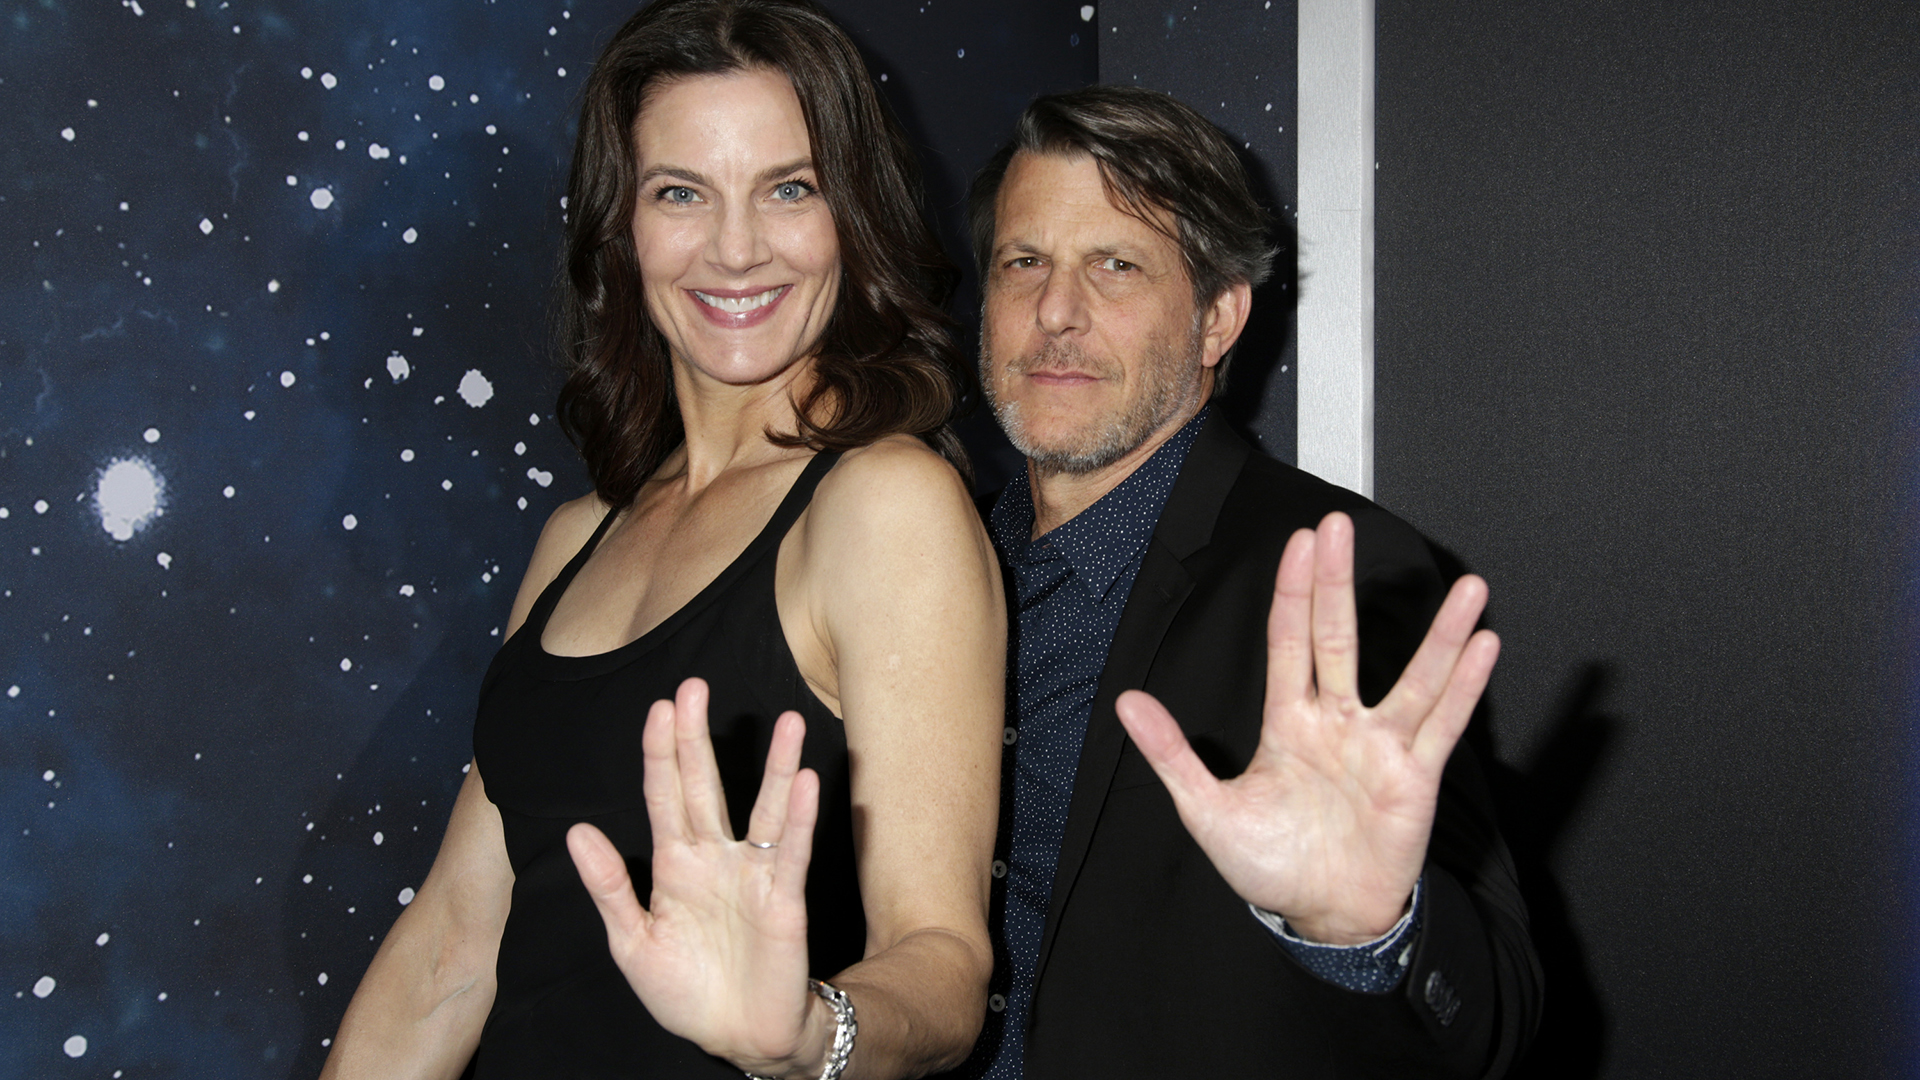 Terry Farrell from Star Trek: Deep Space Nine, and Director Adam Nimoy